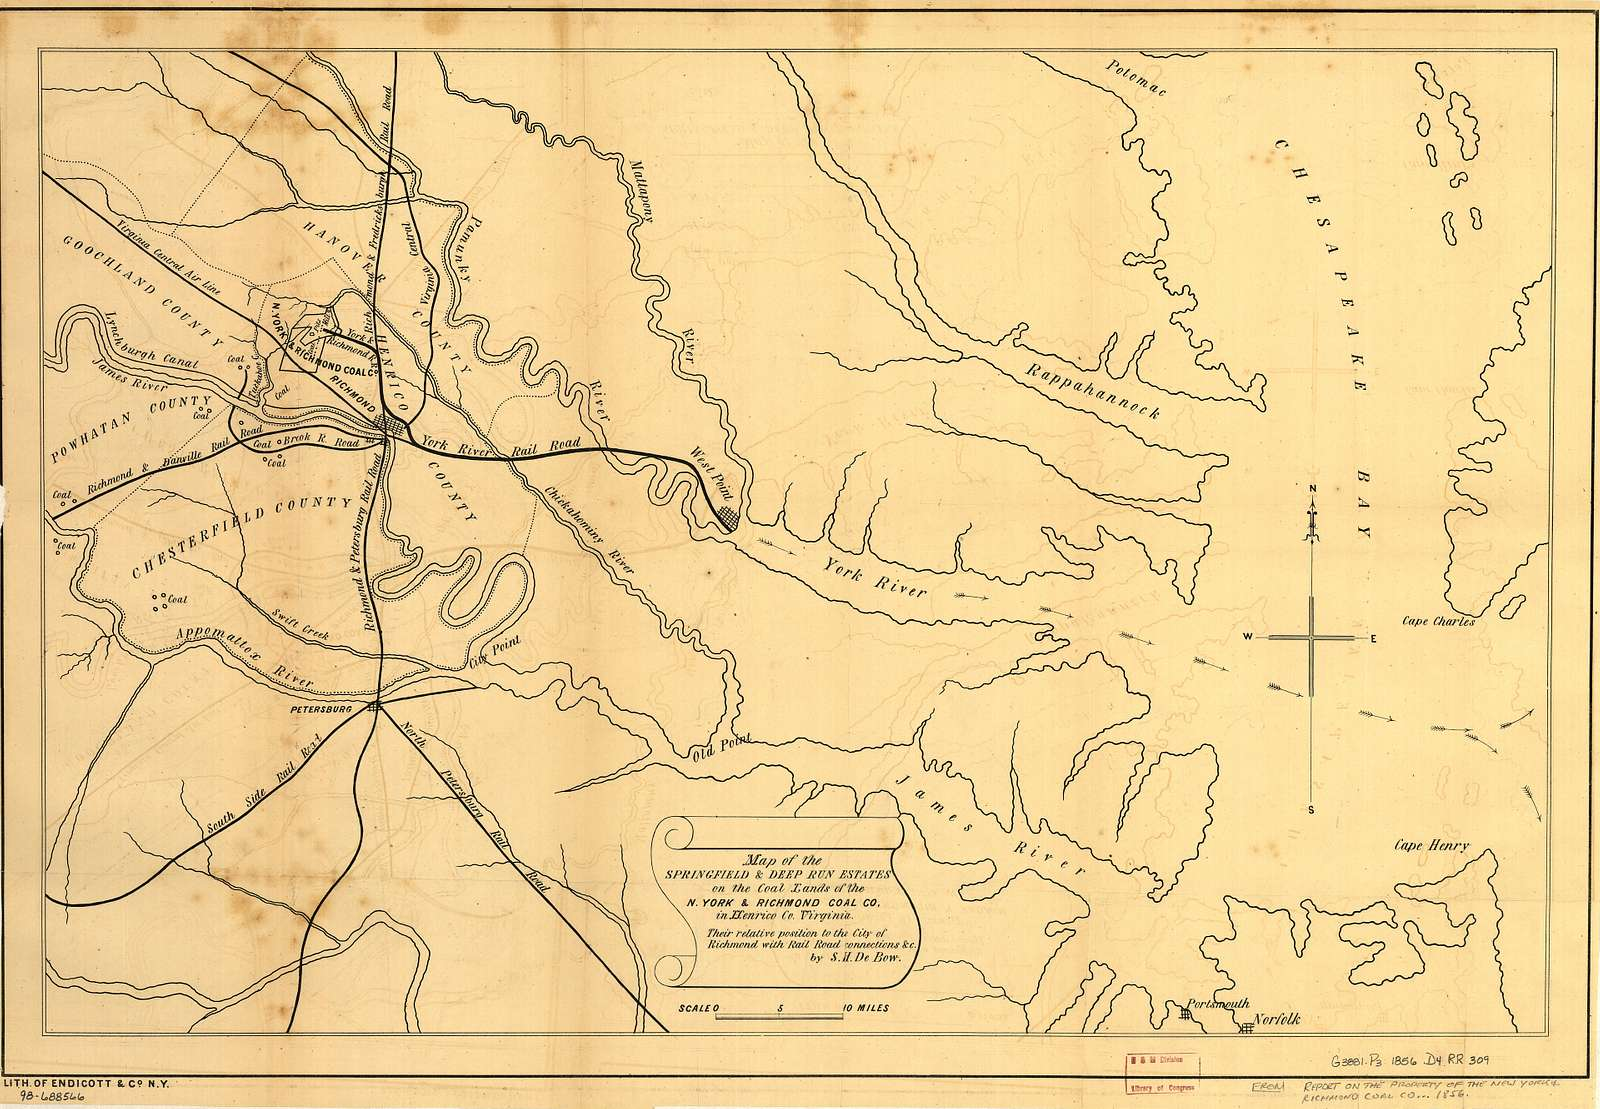 Map of the Springfield & Deep Run estates on the Coal Lands of the N. York & Richmond Coal Co, in Henrico Co. Virginia, their relative position to the city of Richmond with rail road connections &c.